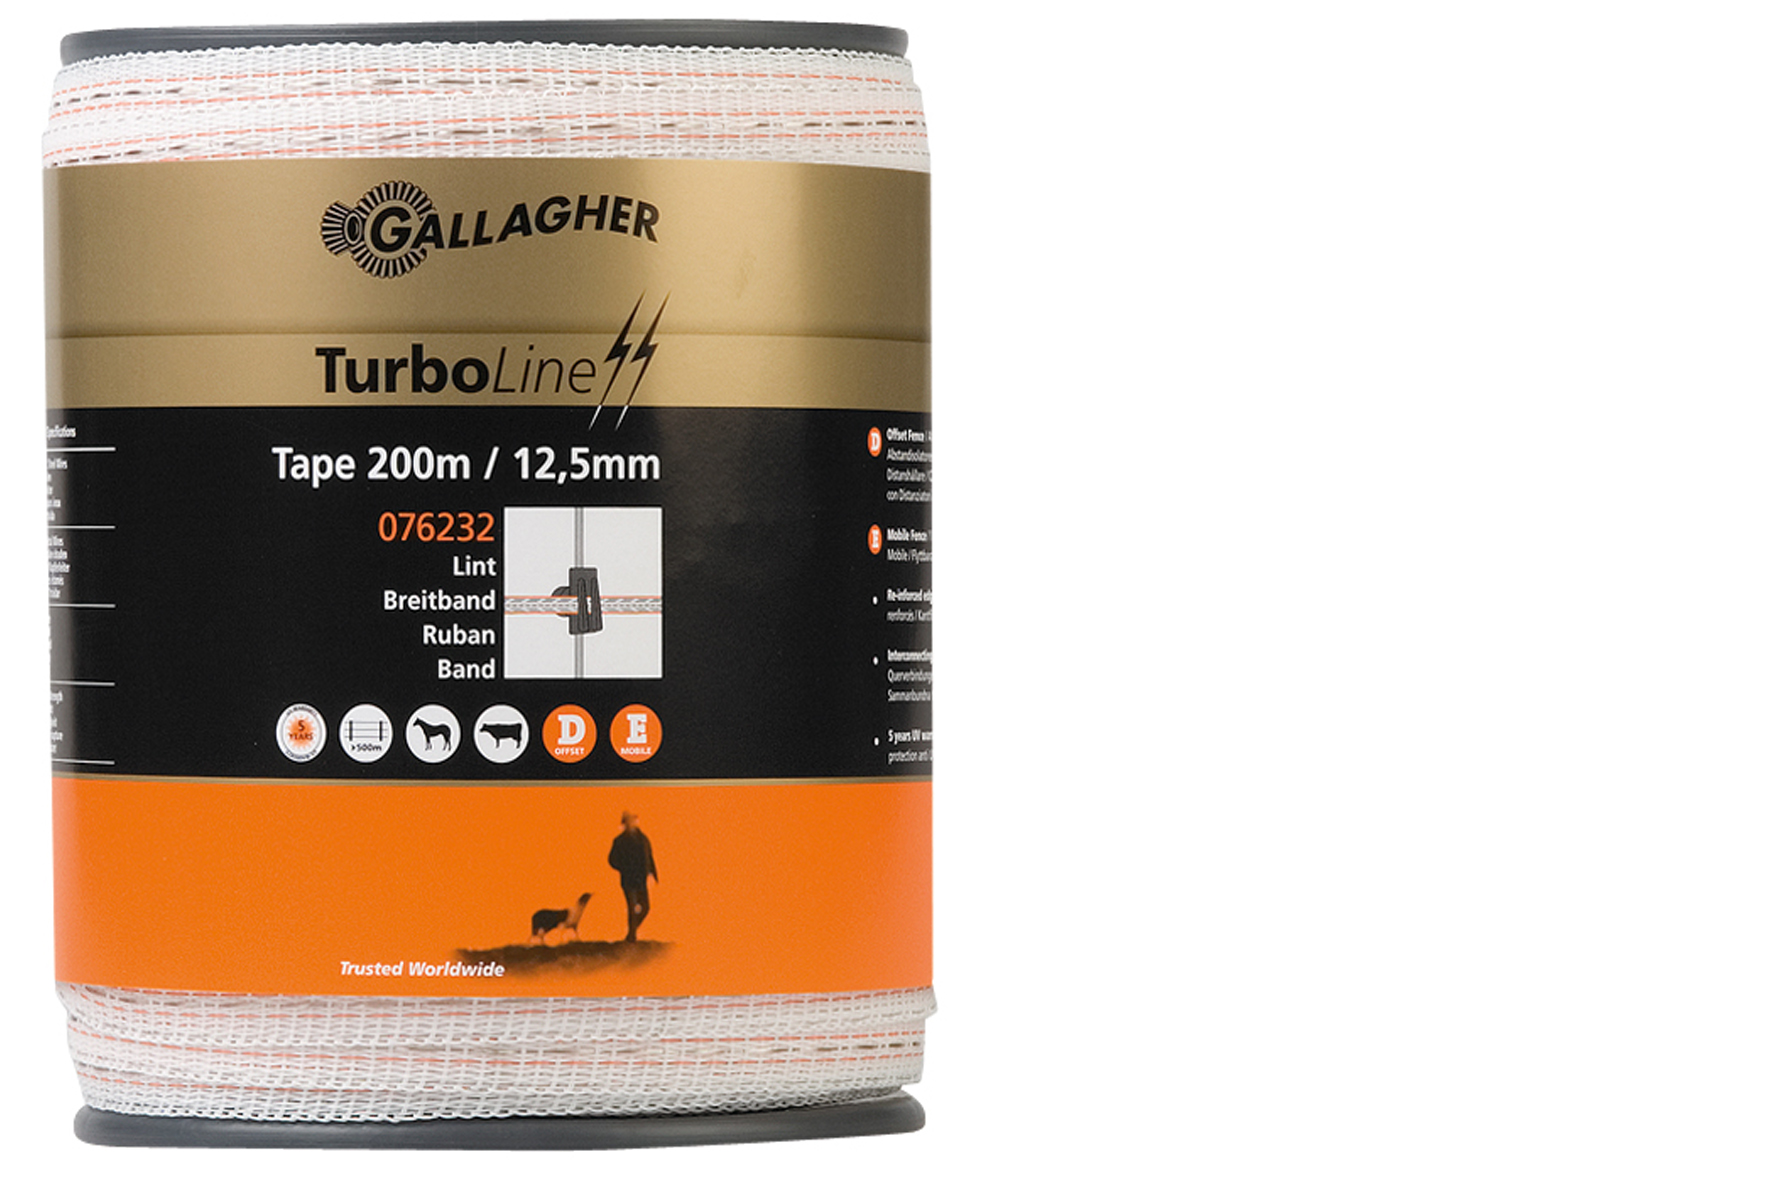 RUBAN 12.5MM TURBOLINE GALLAGHER